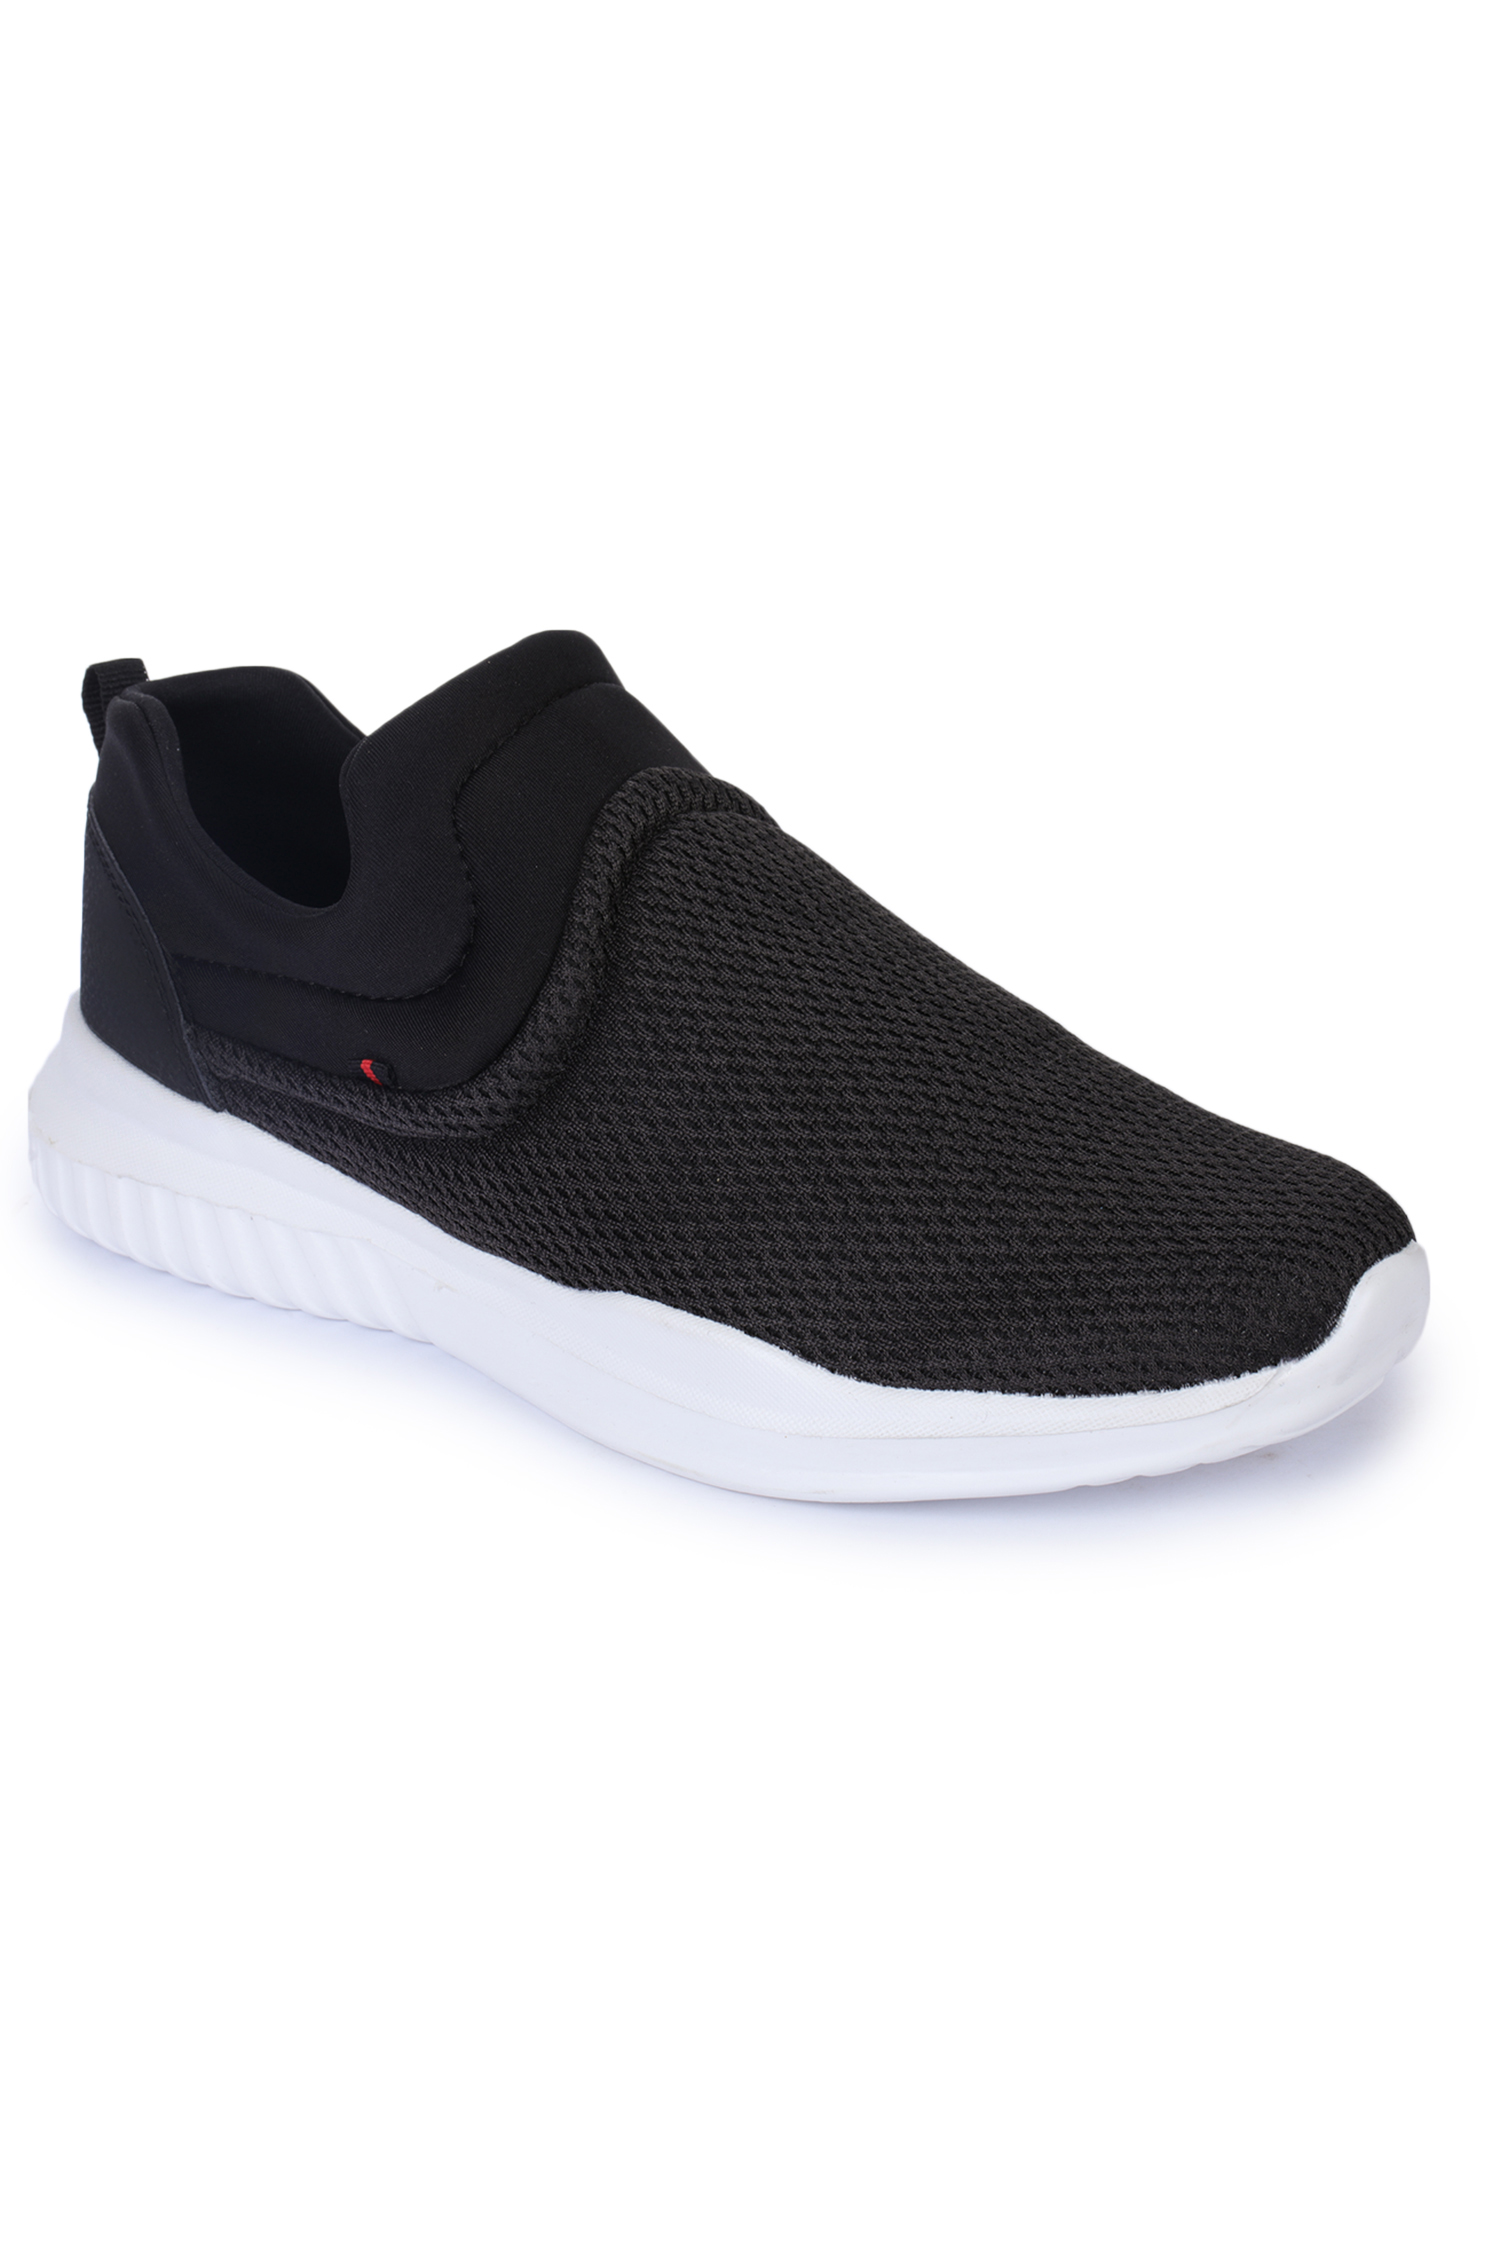 Liberty | Liberty Force 10 SHOES VISION-6 _BLACK FOR - Men